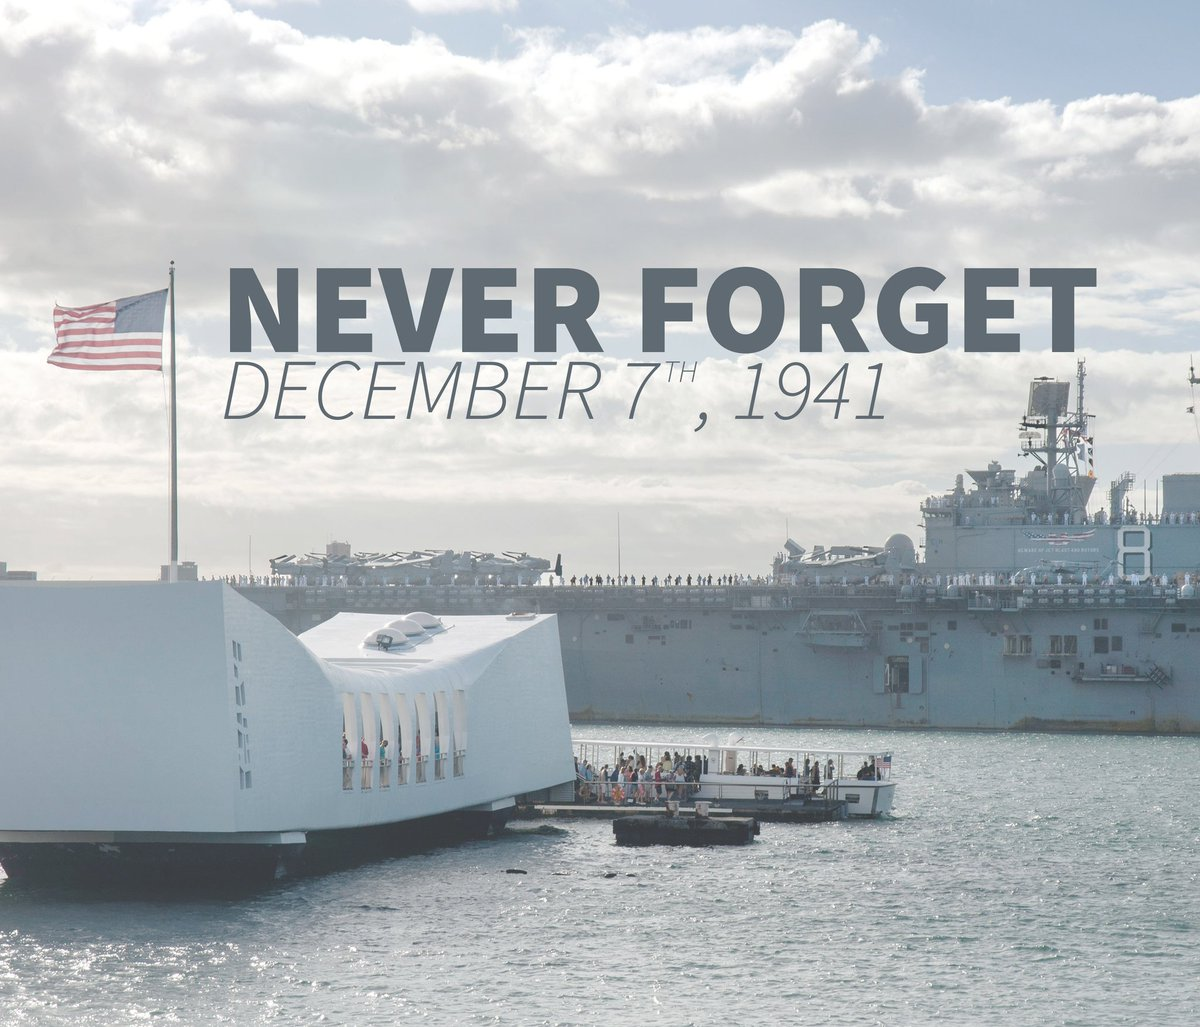 Never Forget December 7th, 1941 #PearlHarbor74 (Photo courtesy of U.S Navy) https://t.co/FiwcONrNTf